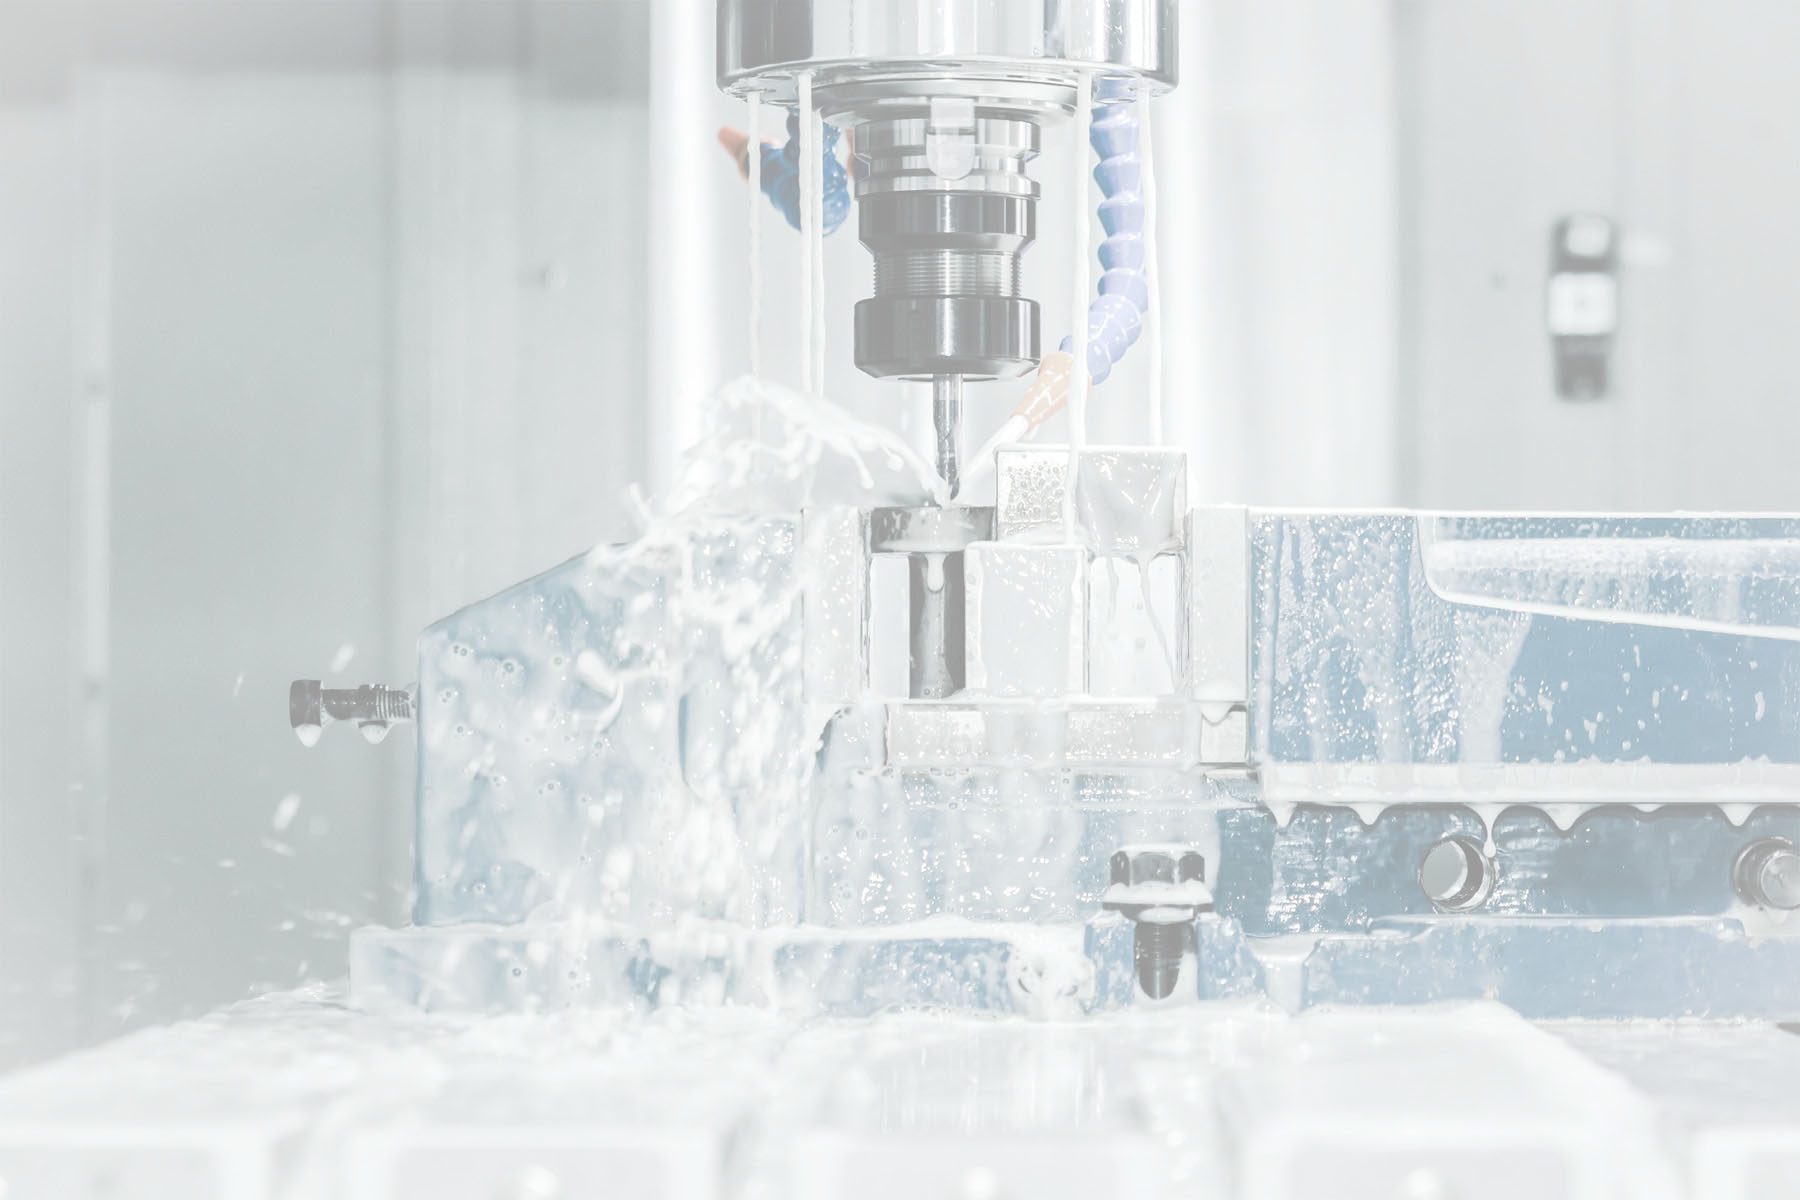 Machining Solutions - CDINW